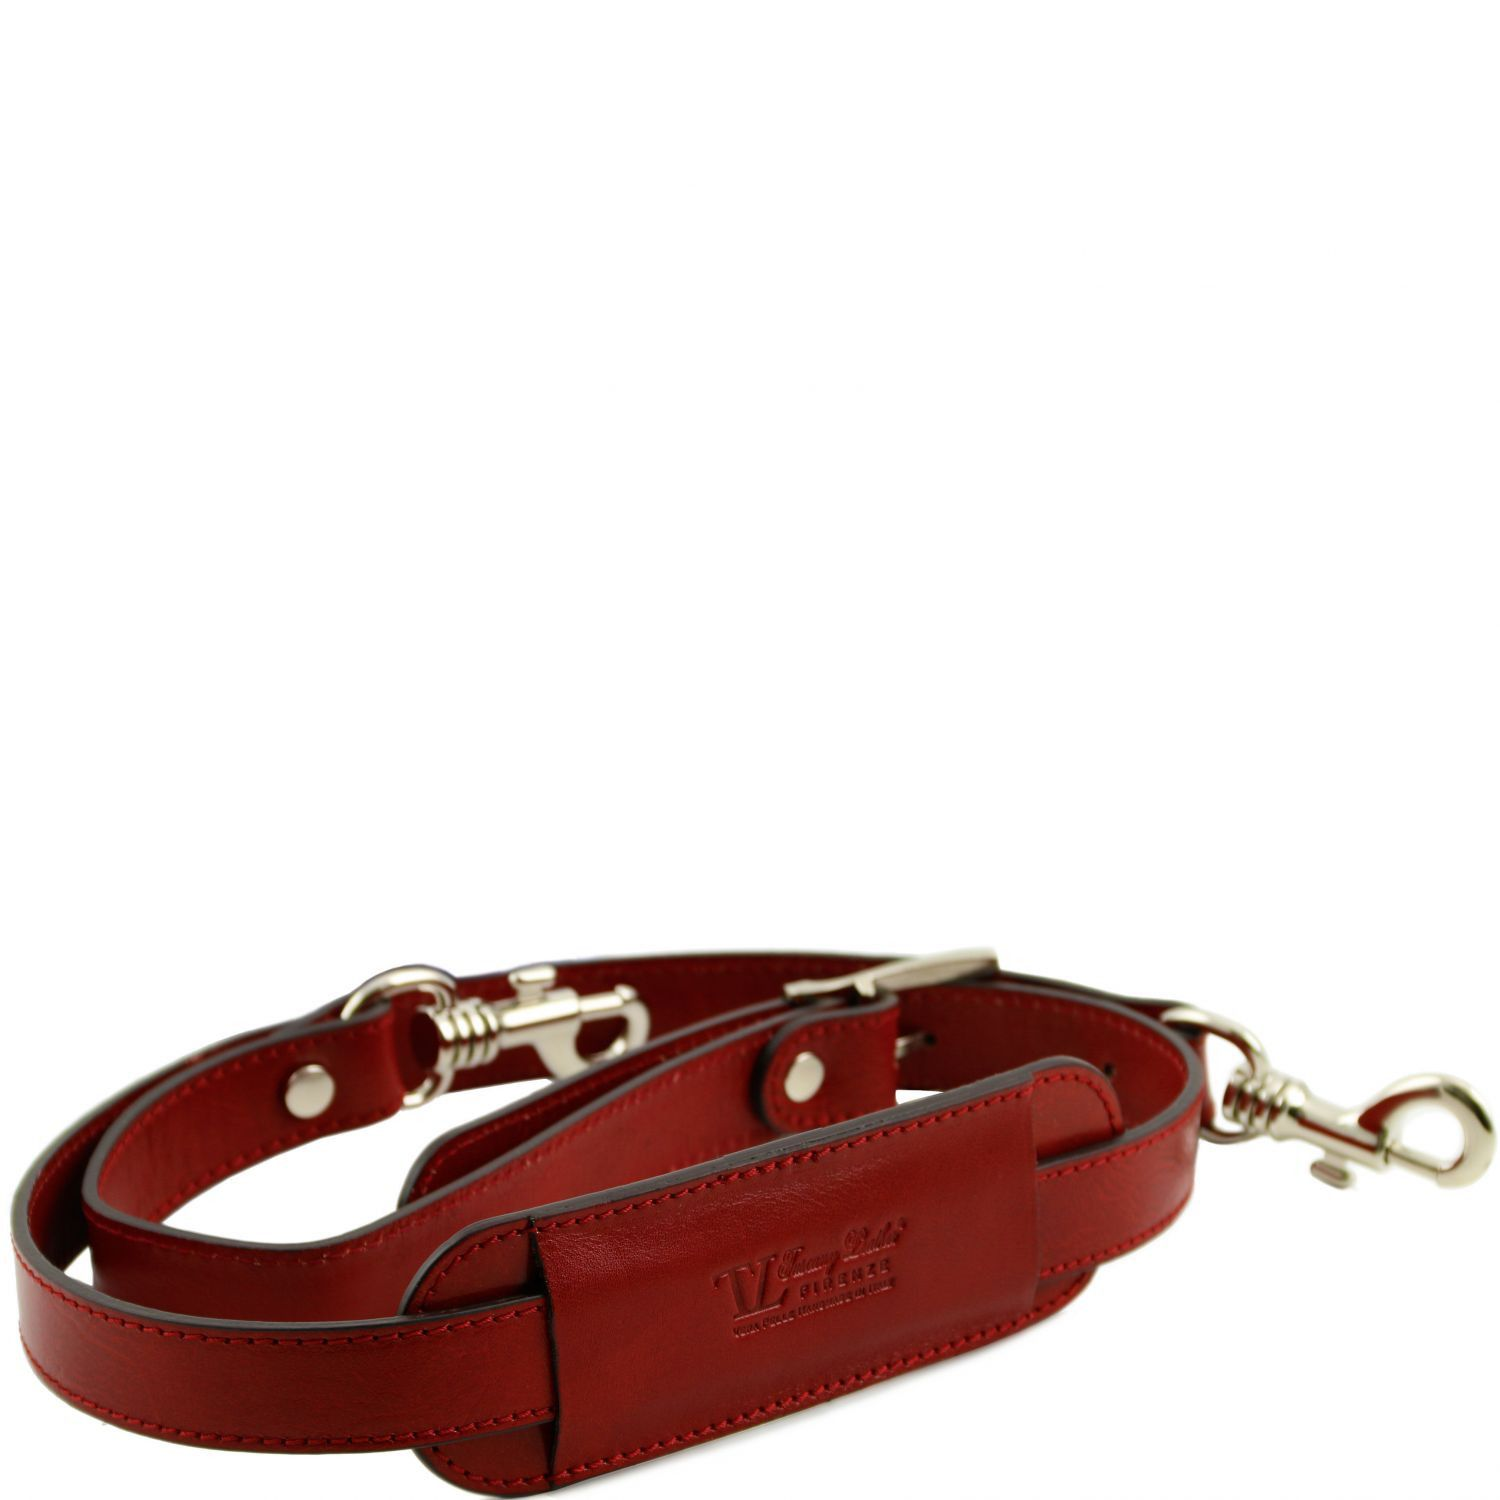 Bilde av Adjustable leather shoulder strap Red